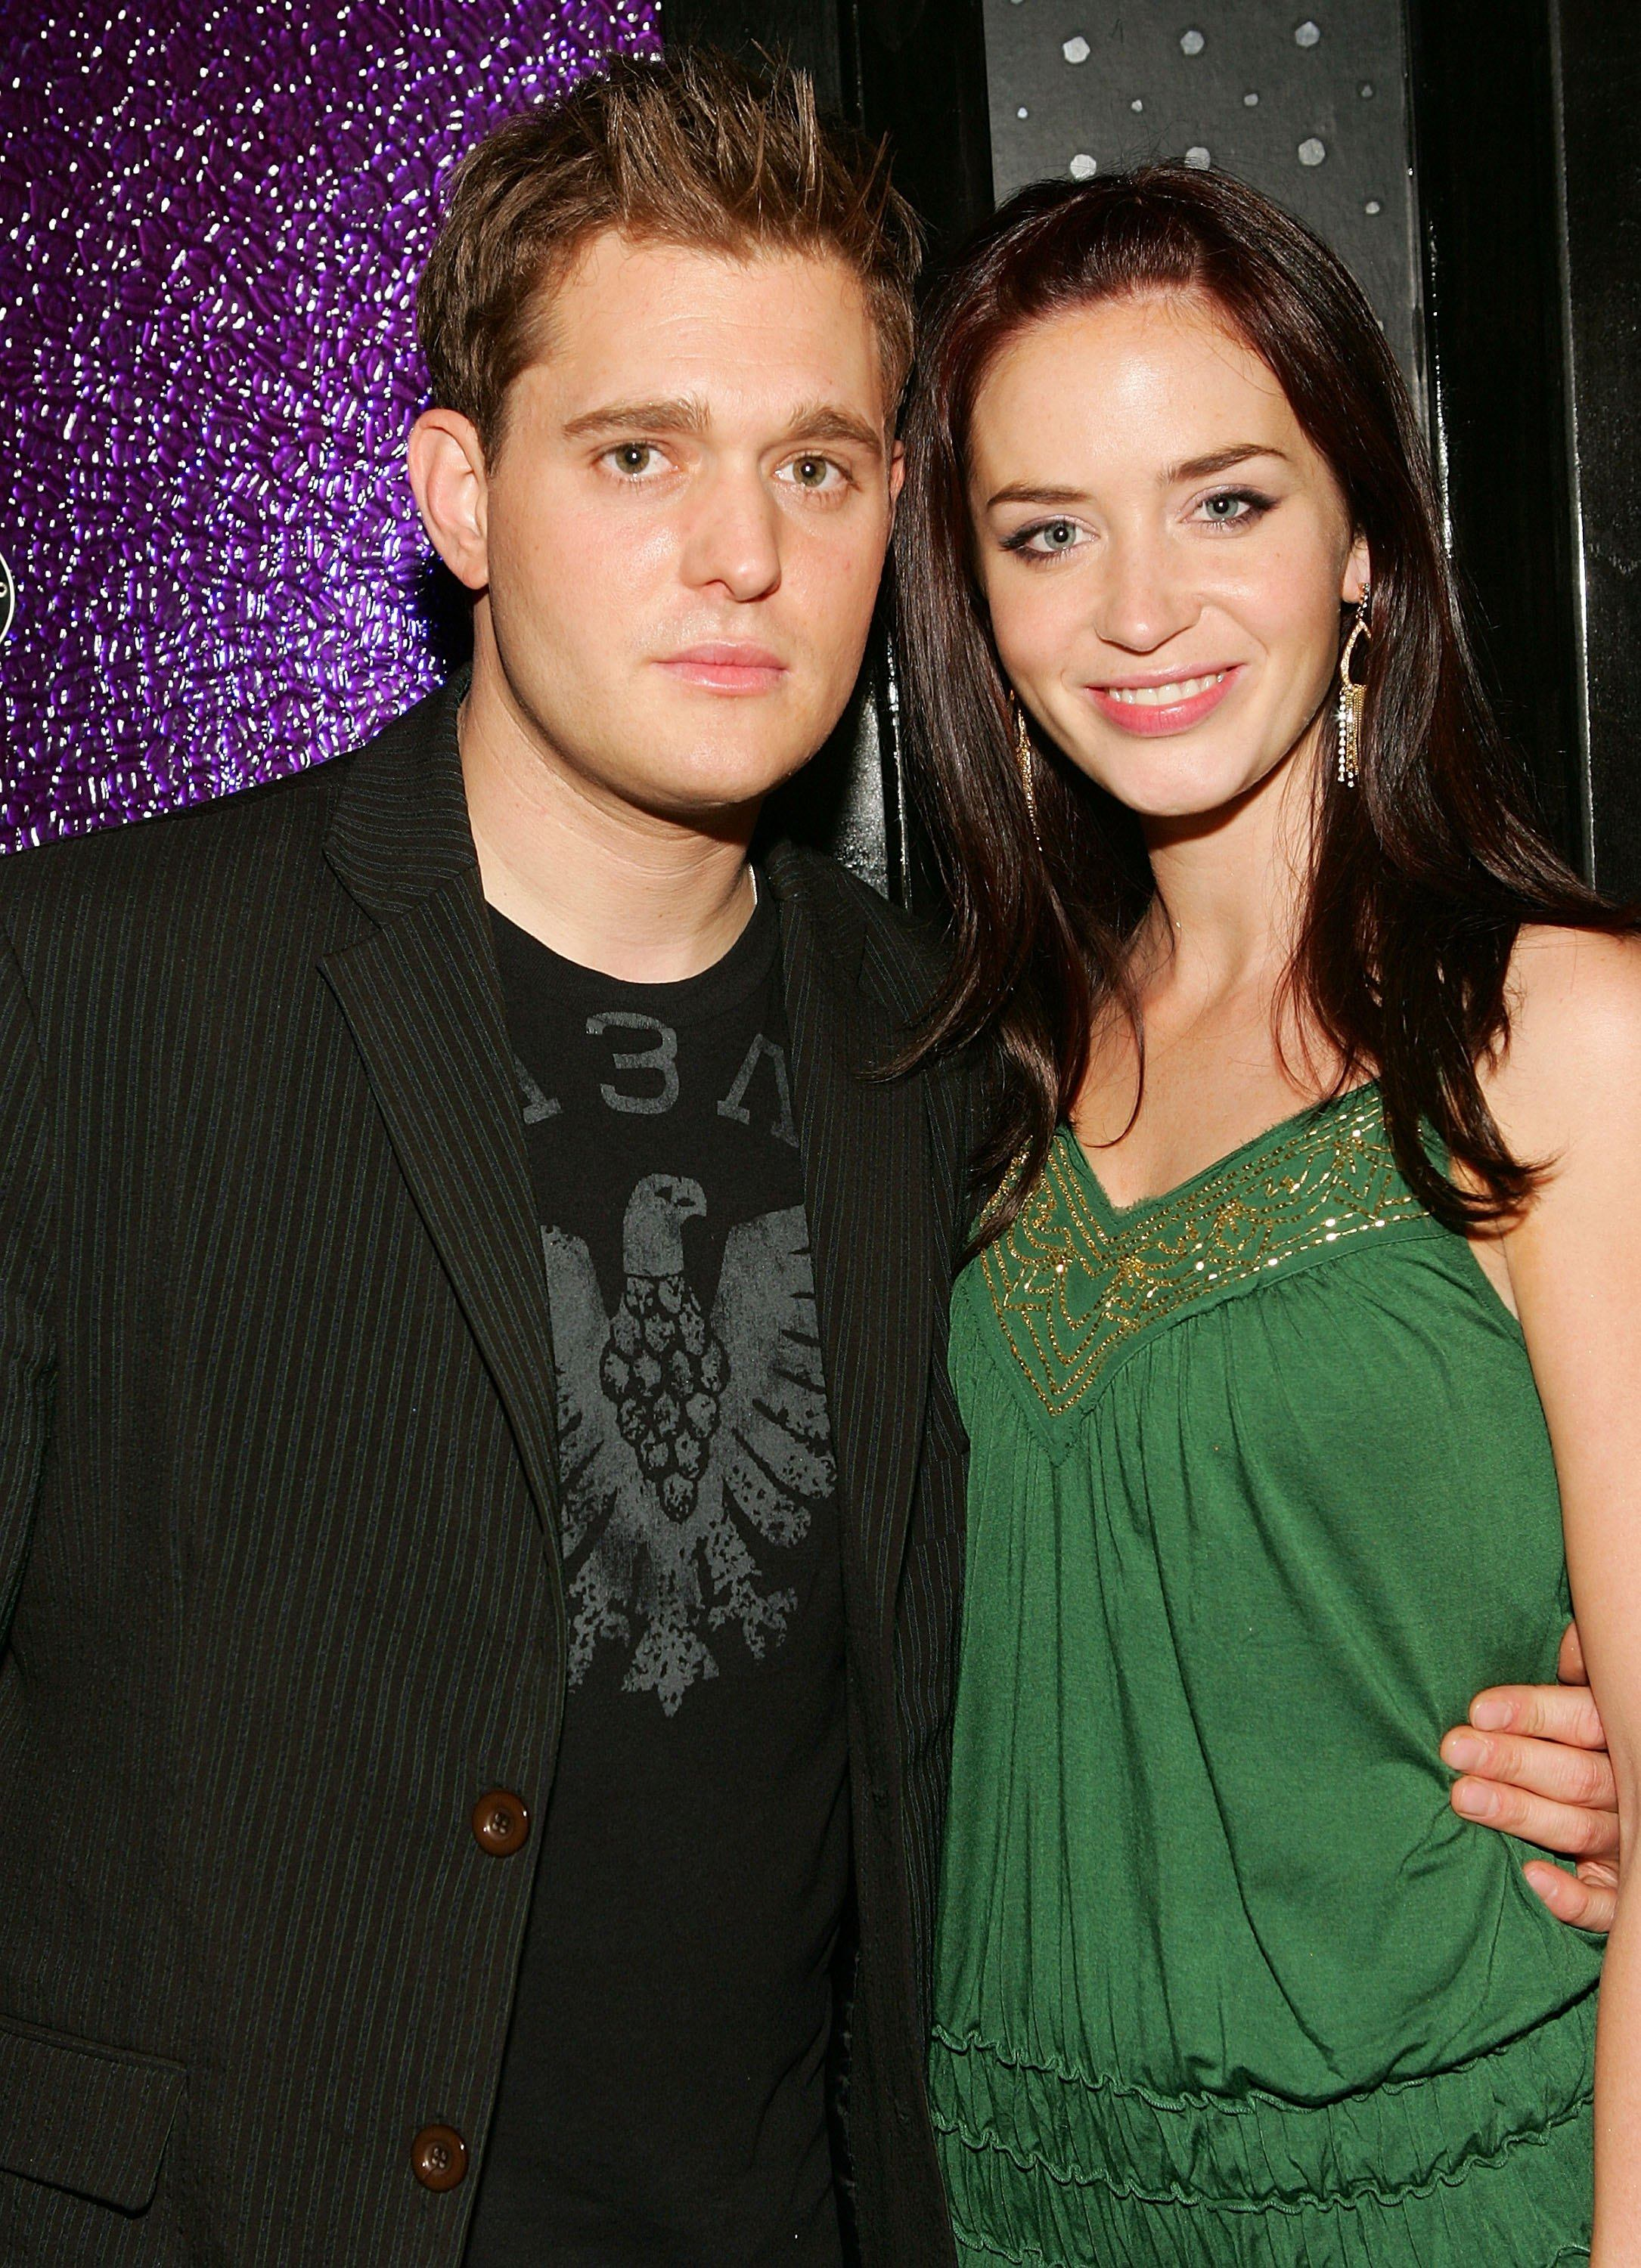 """Singer Michael Buble and actress Emily Blunt attend """"The Devil Wears Prada"""" premiere after party at 230 Fifth June 19, 2006 in New York City."""